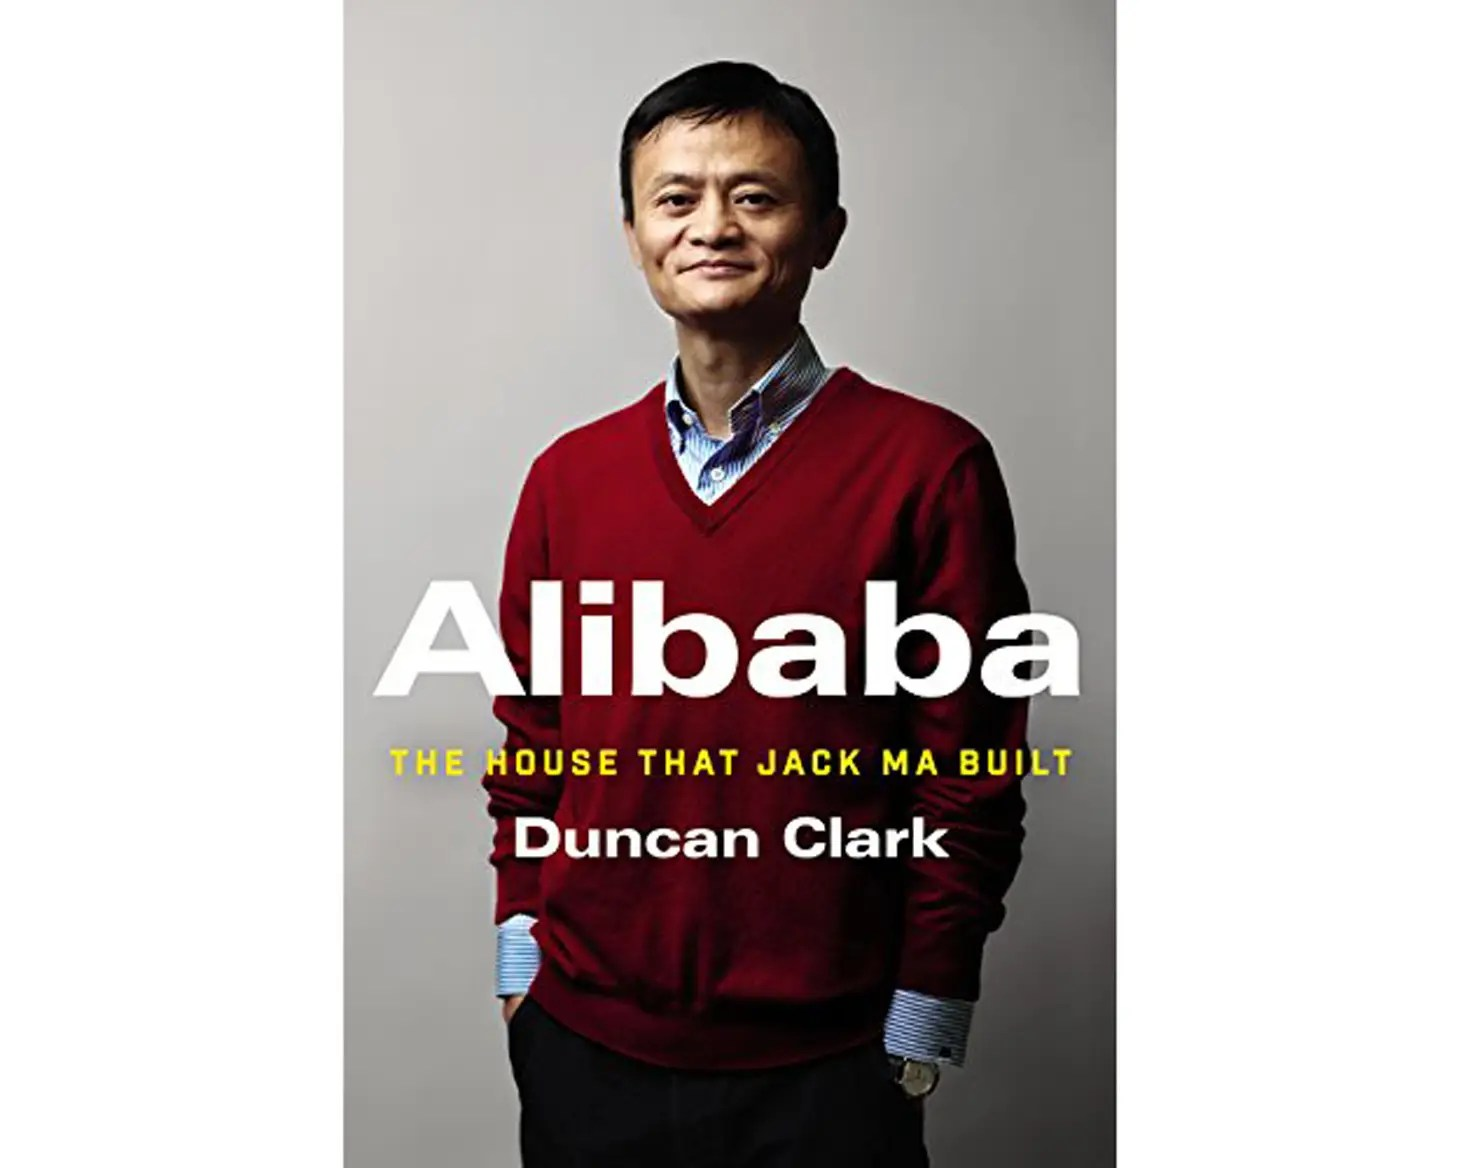 """Alibaba: The House That Jack Ma Built"" by Duncan Clark"